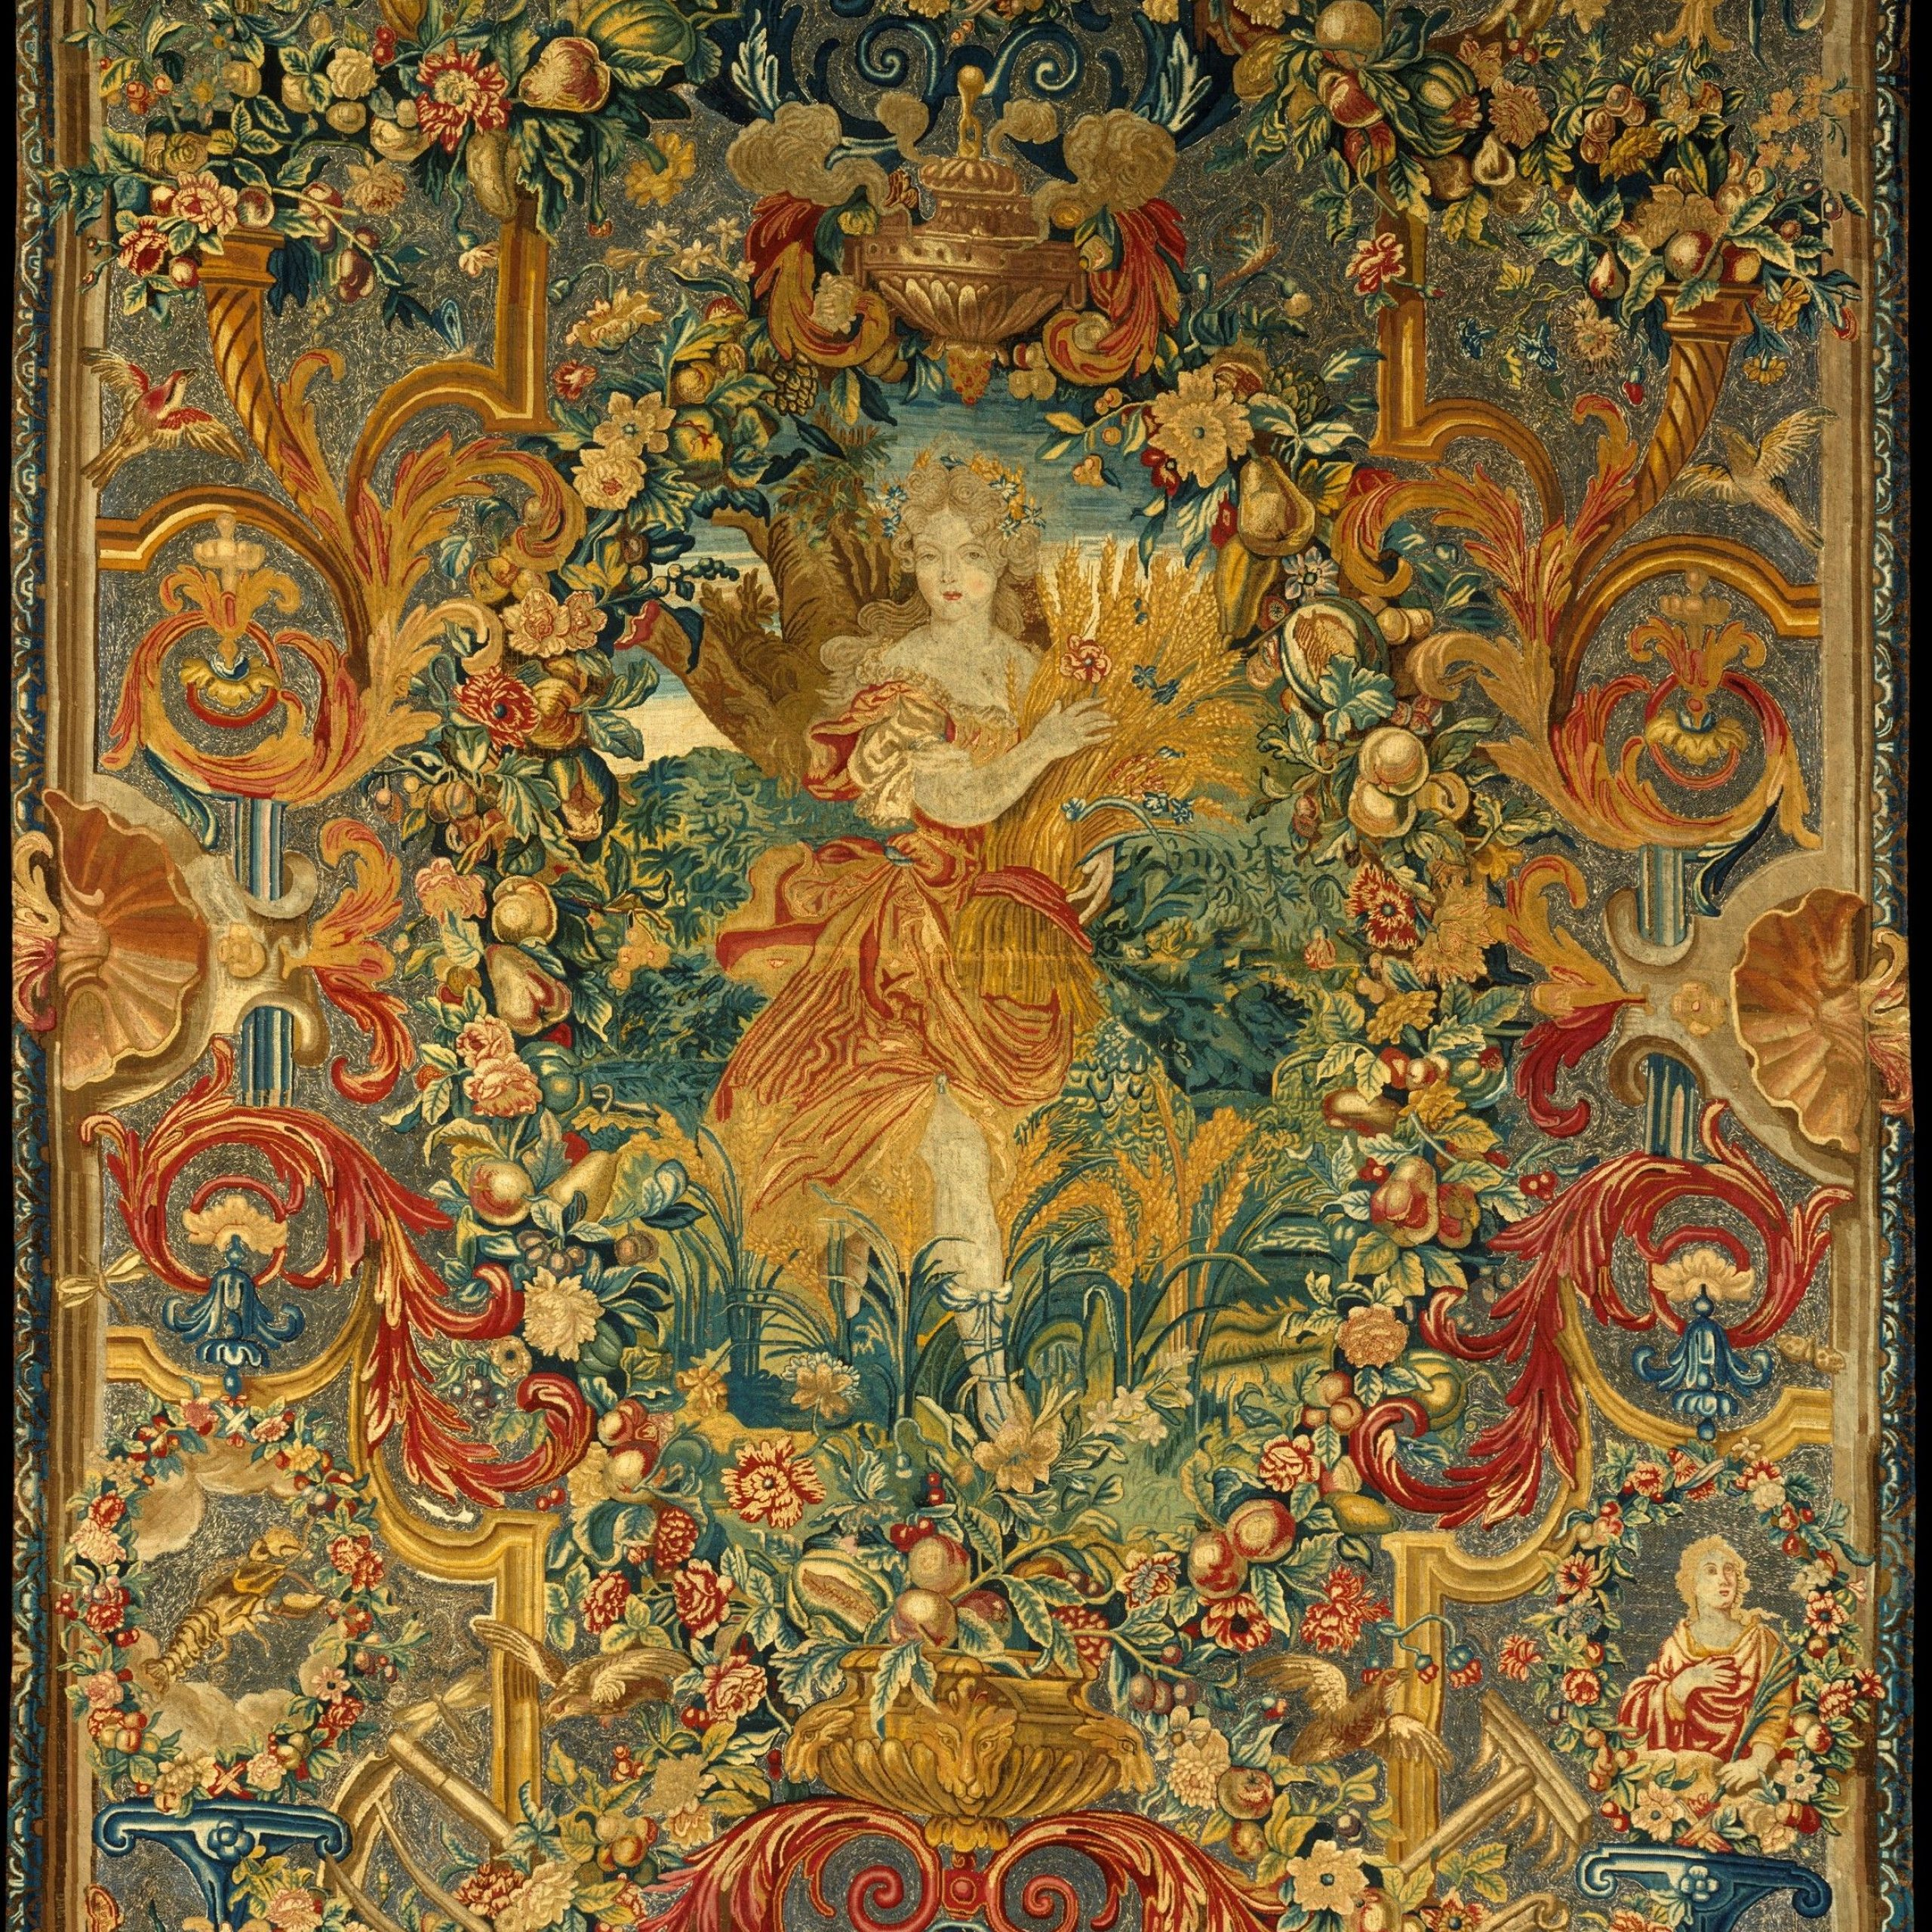 100+ Tapestry Ideas | Tapestry, Art, Medieval Tapestry Pertaining To 2017 Blended Fabric Verdure Au Chateau Ii European Tapestries (View 7 of 20)